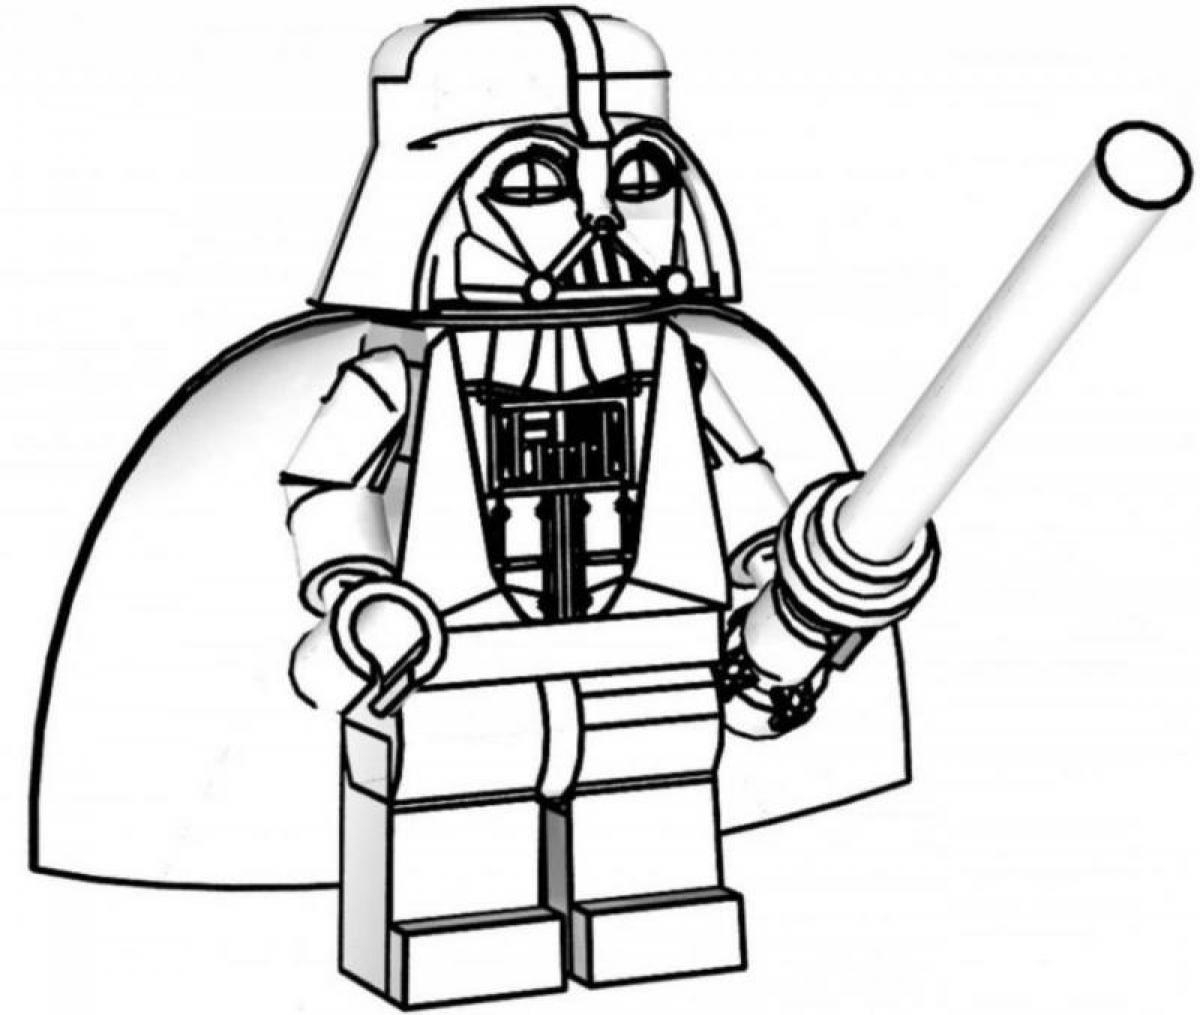 Yoda Coloring Pages | Free download best Yoda Coloring Pages on ...